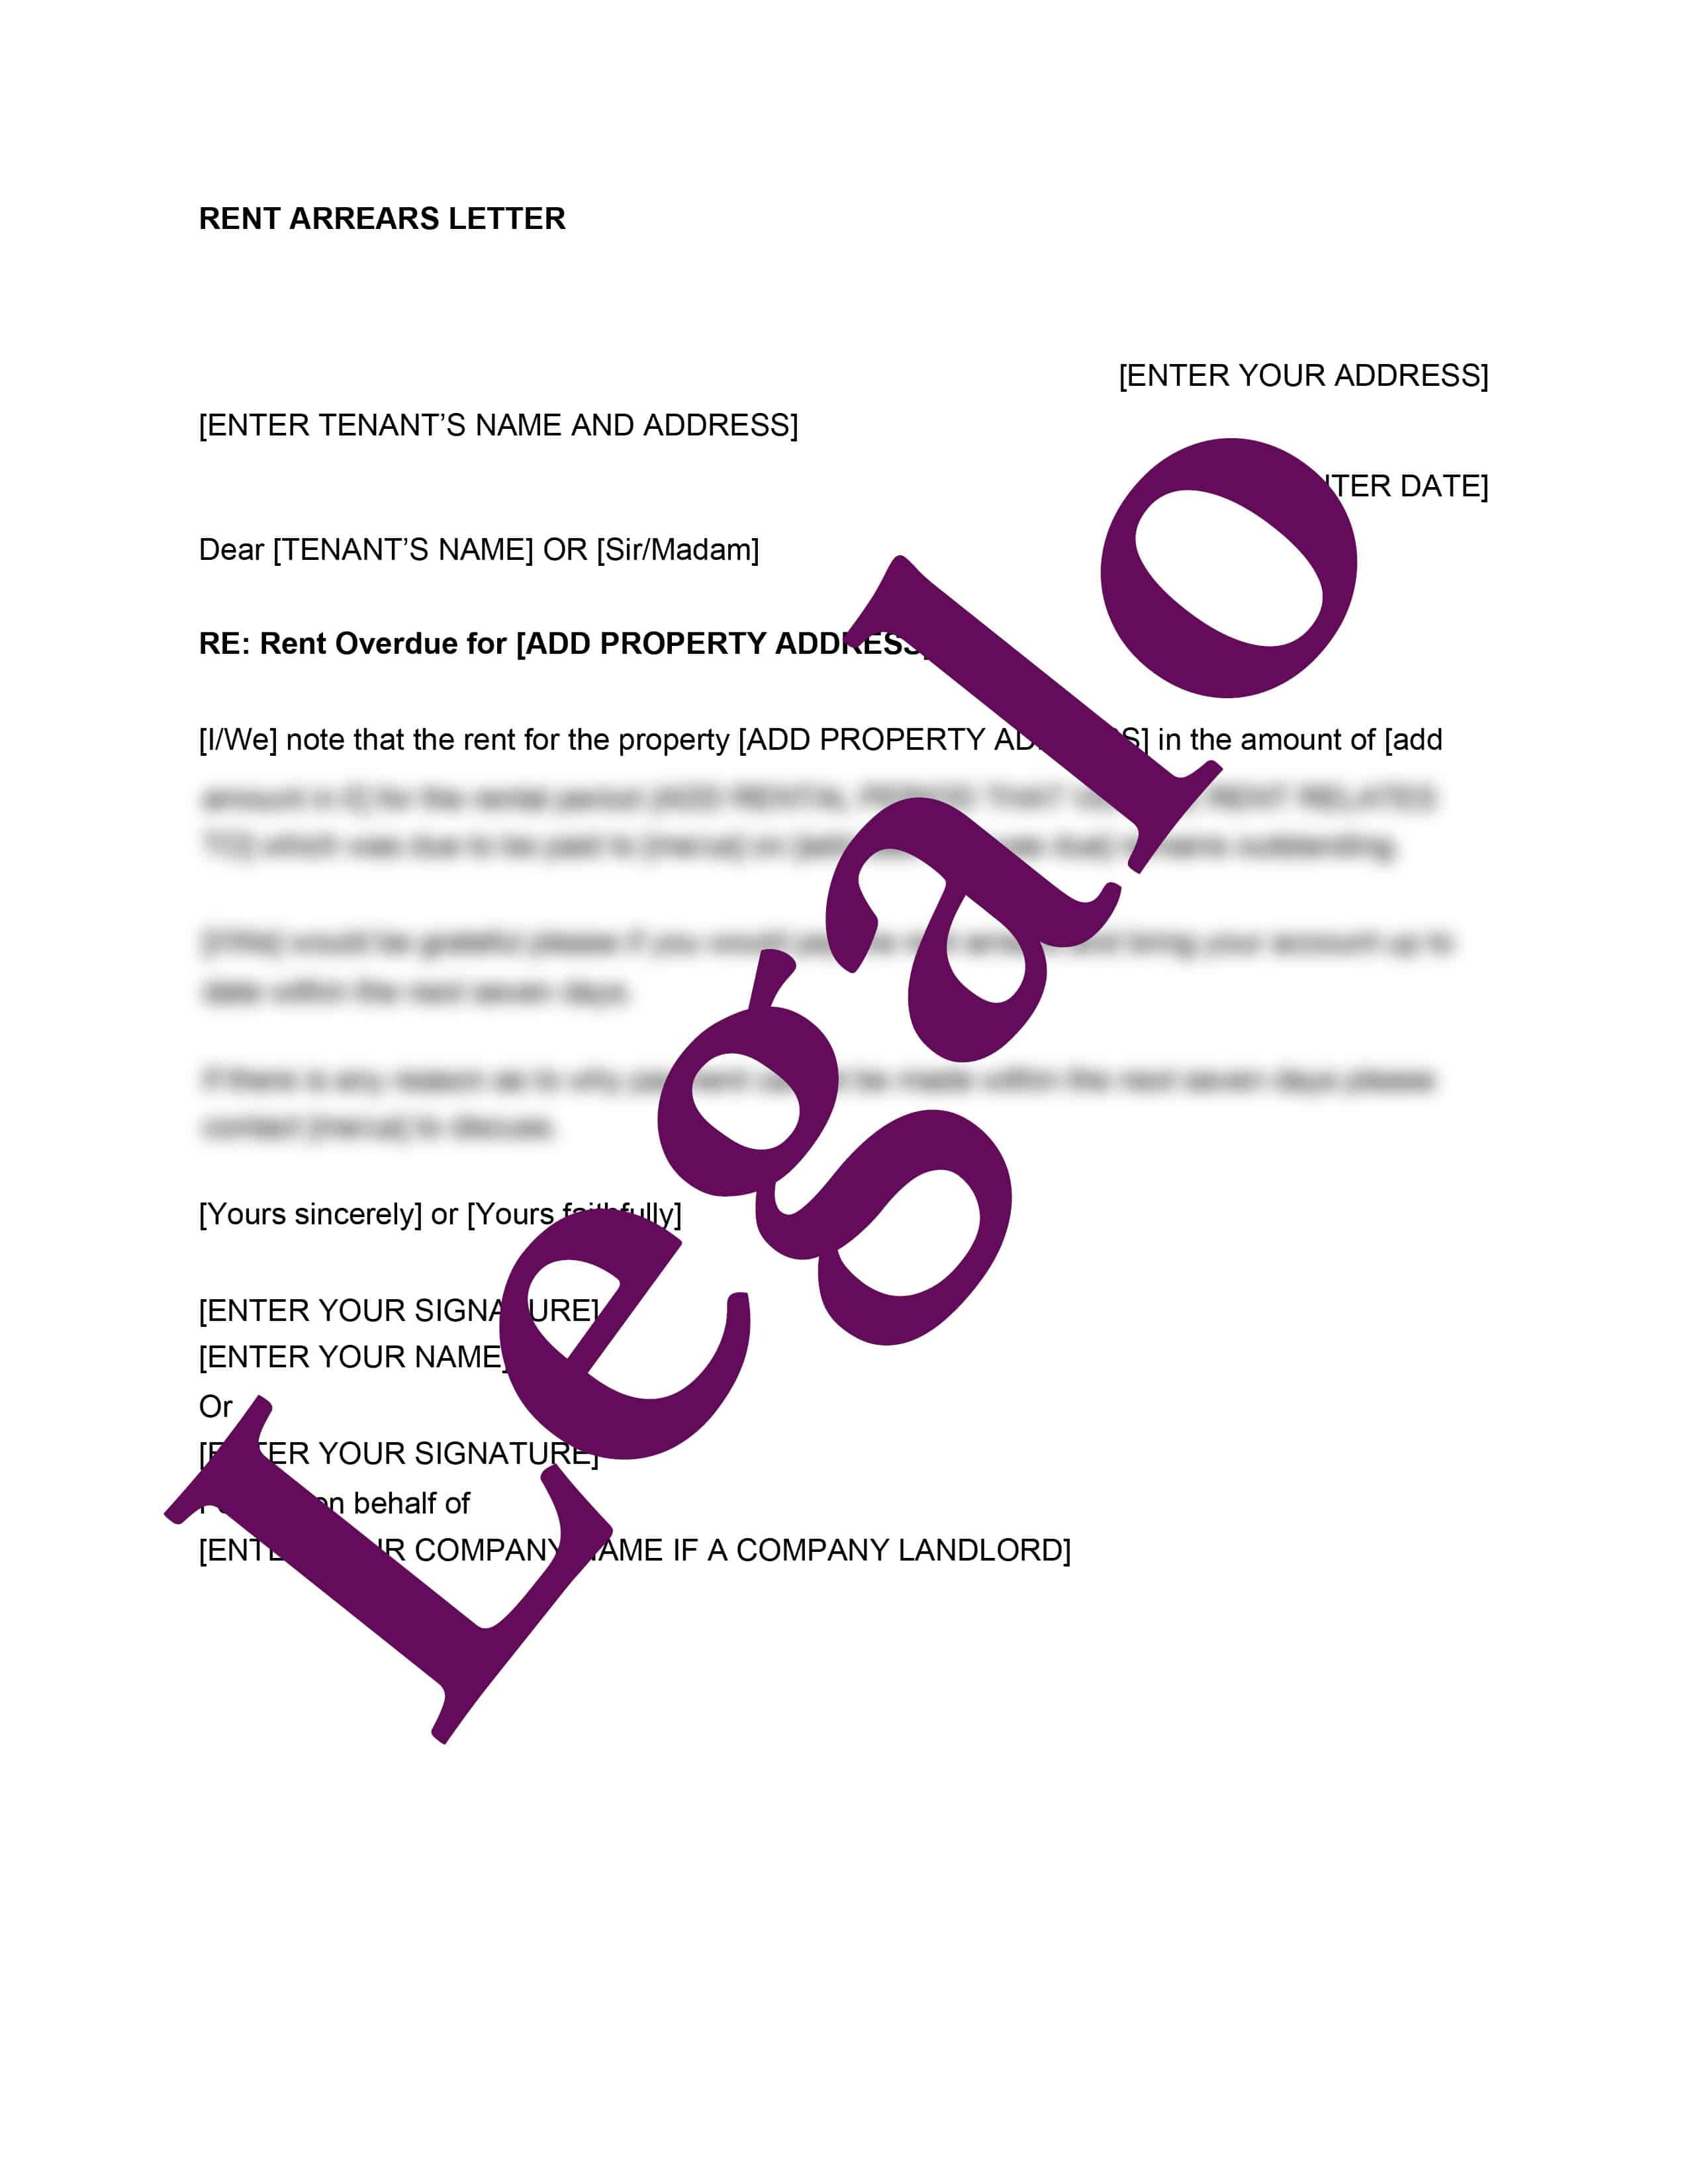 Rent arrears letter template preview image page 1